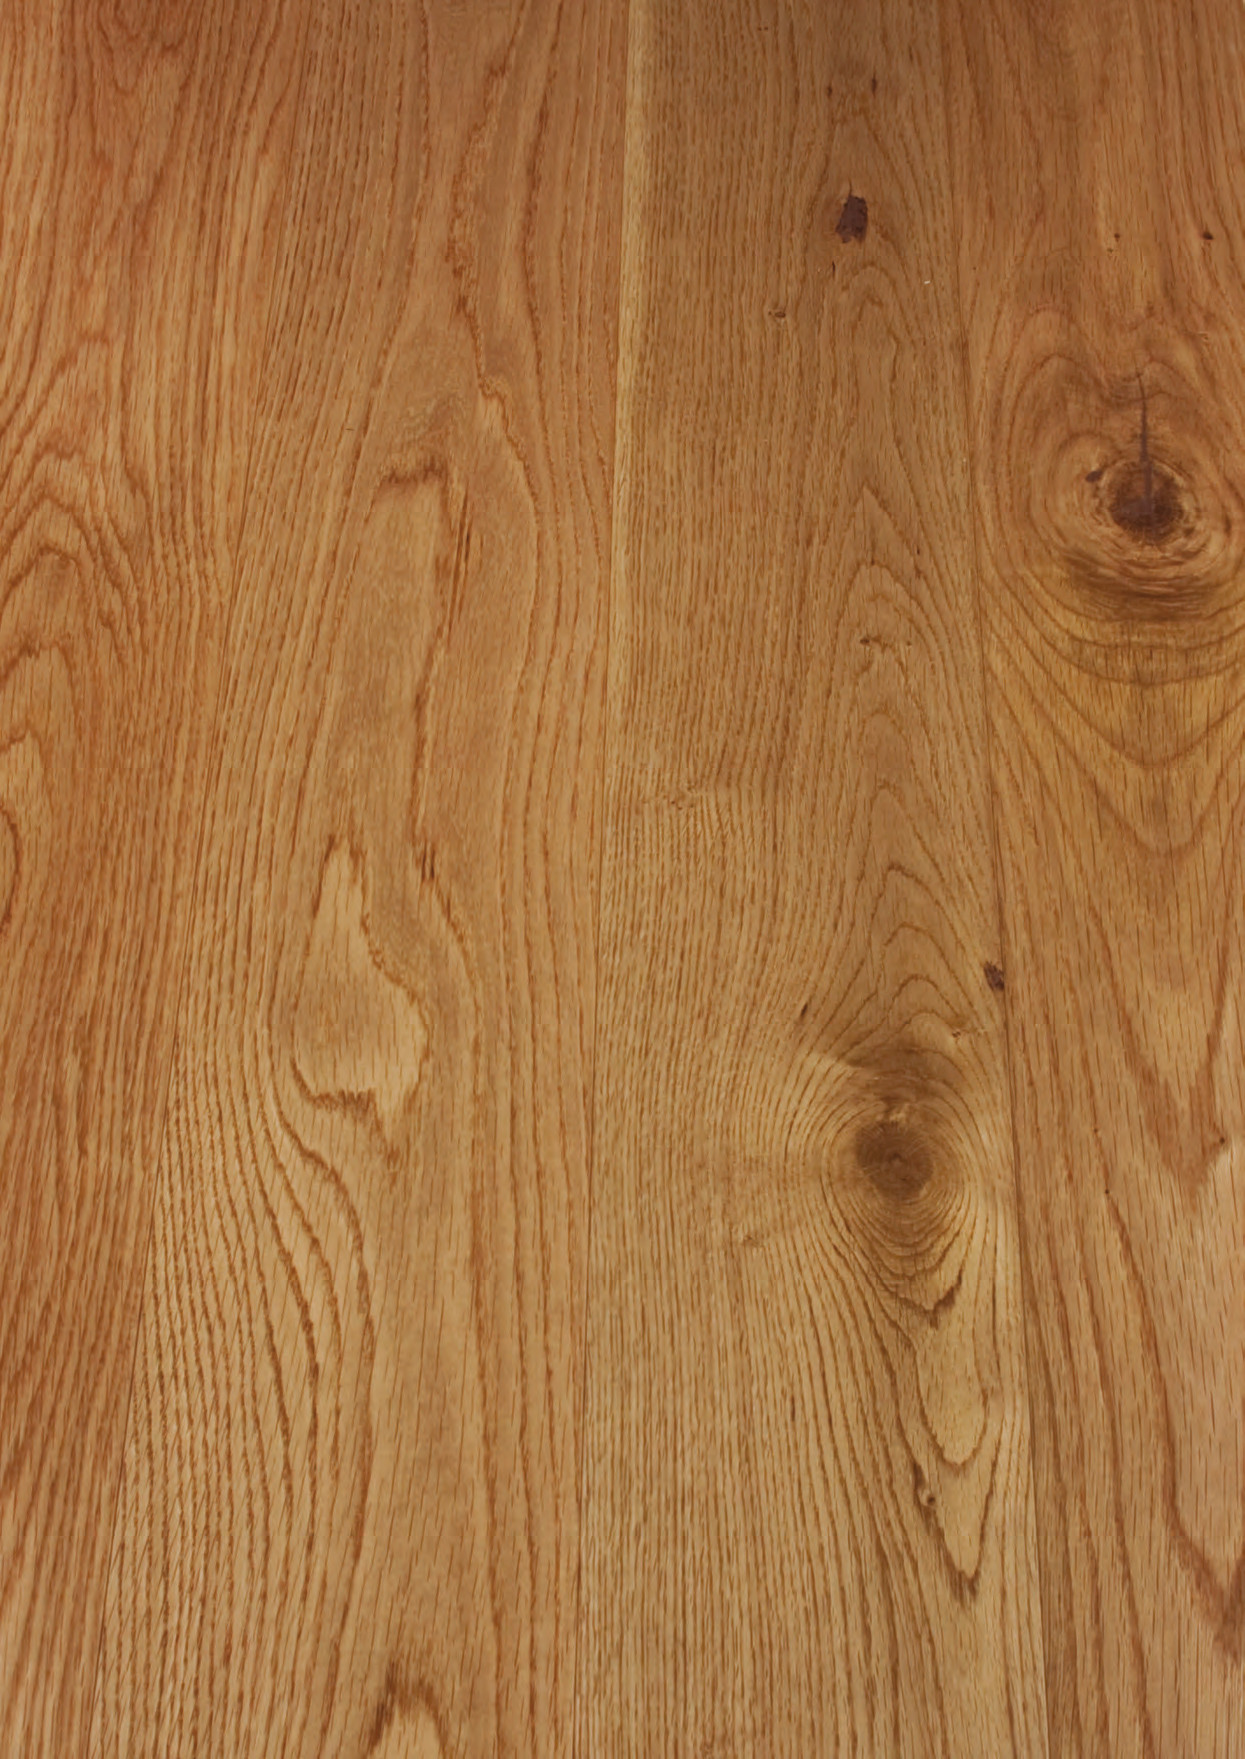 Hardwood Floor Finish Life Expectancy Of Brooks Bros for Hardwood Flooring 2016 17 Price List Pdf Pertaining to Can T Find What You Re Looking for Call Your L Ocal